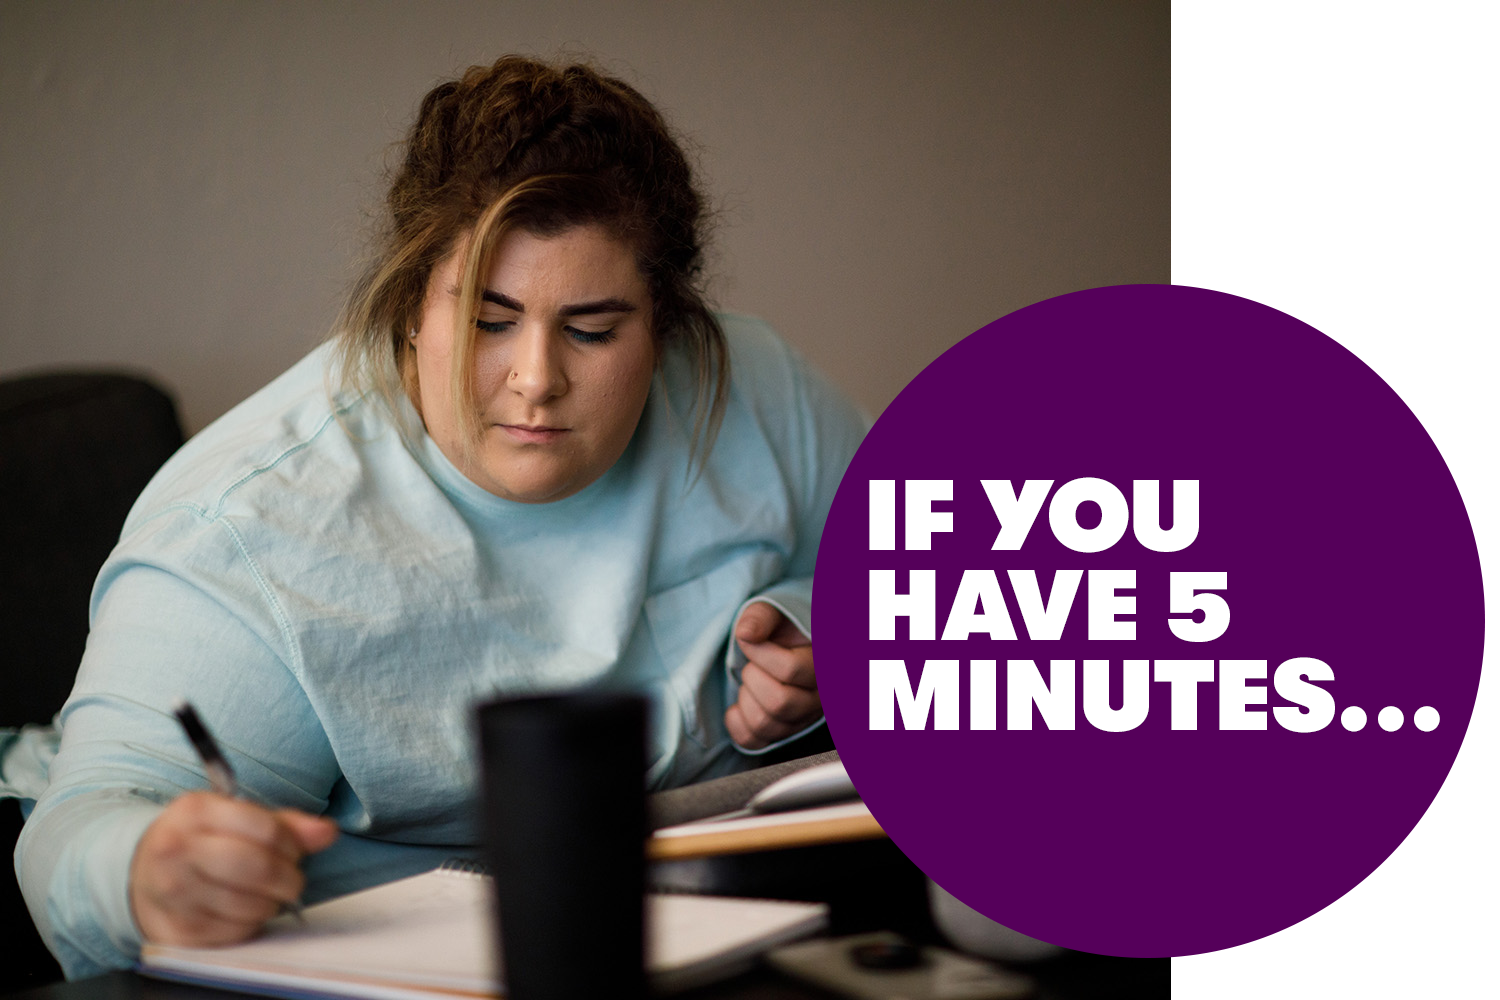 if you have 5 minutes